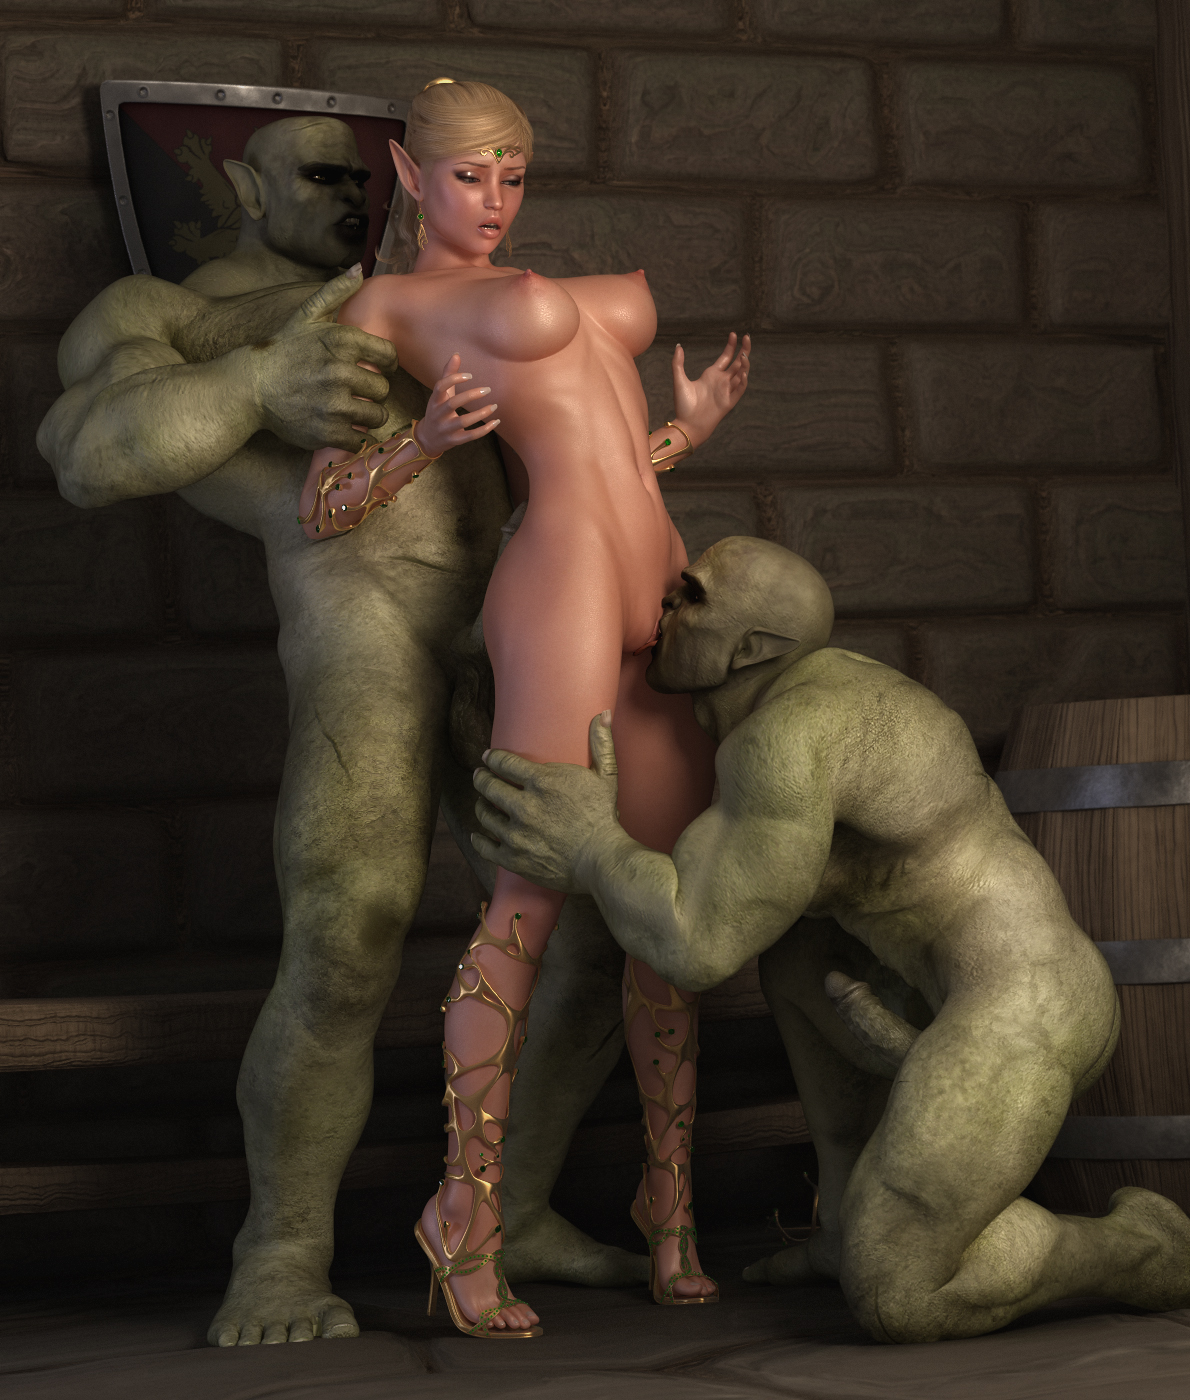 Troll monster porn 3d erotic videos